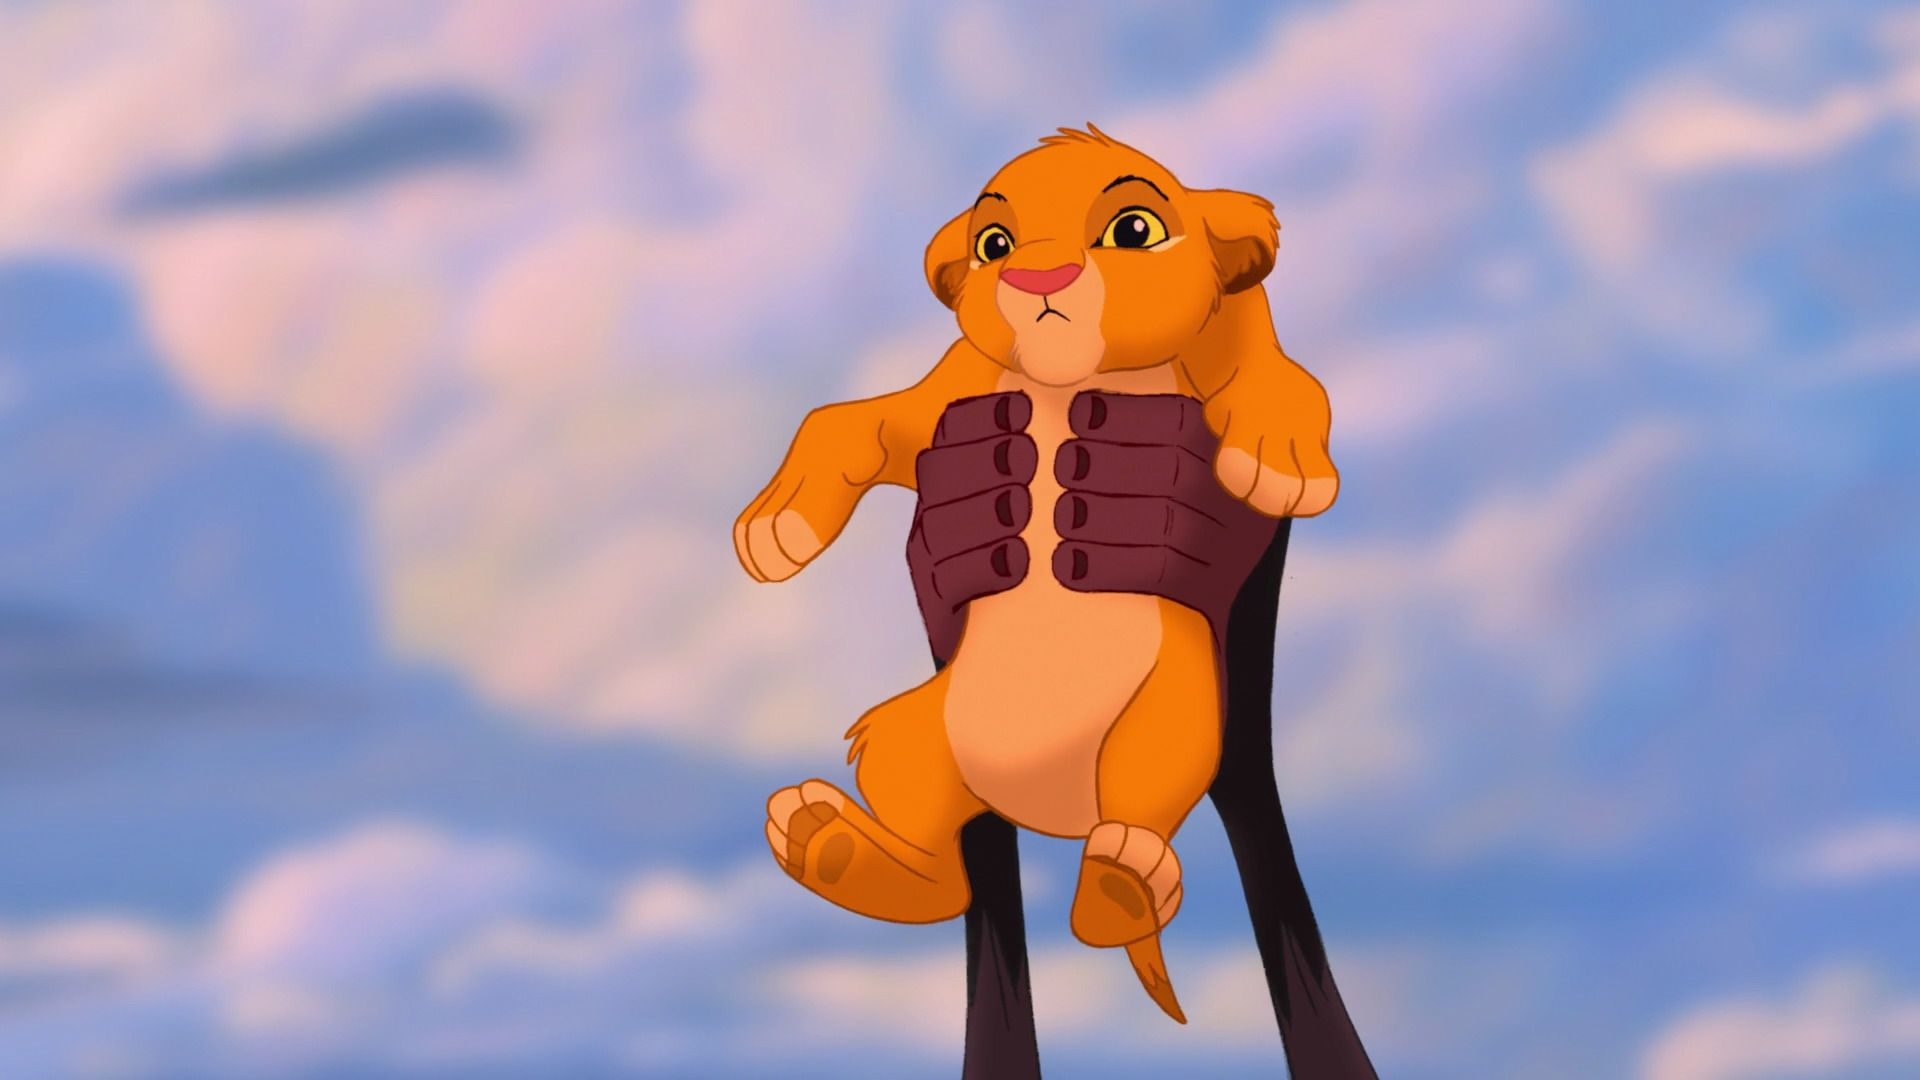 Baby Kiara Which We Find Out In The Lion King 2 Simba S Pride Screencap Gallery For The Lion King 19 The Lion King 1994 Lion King Drawings Disney Lion King